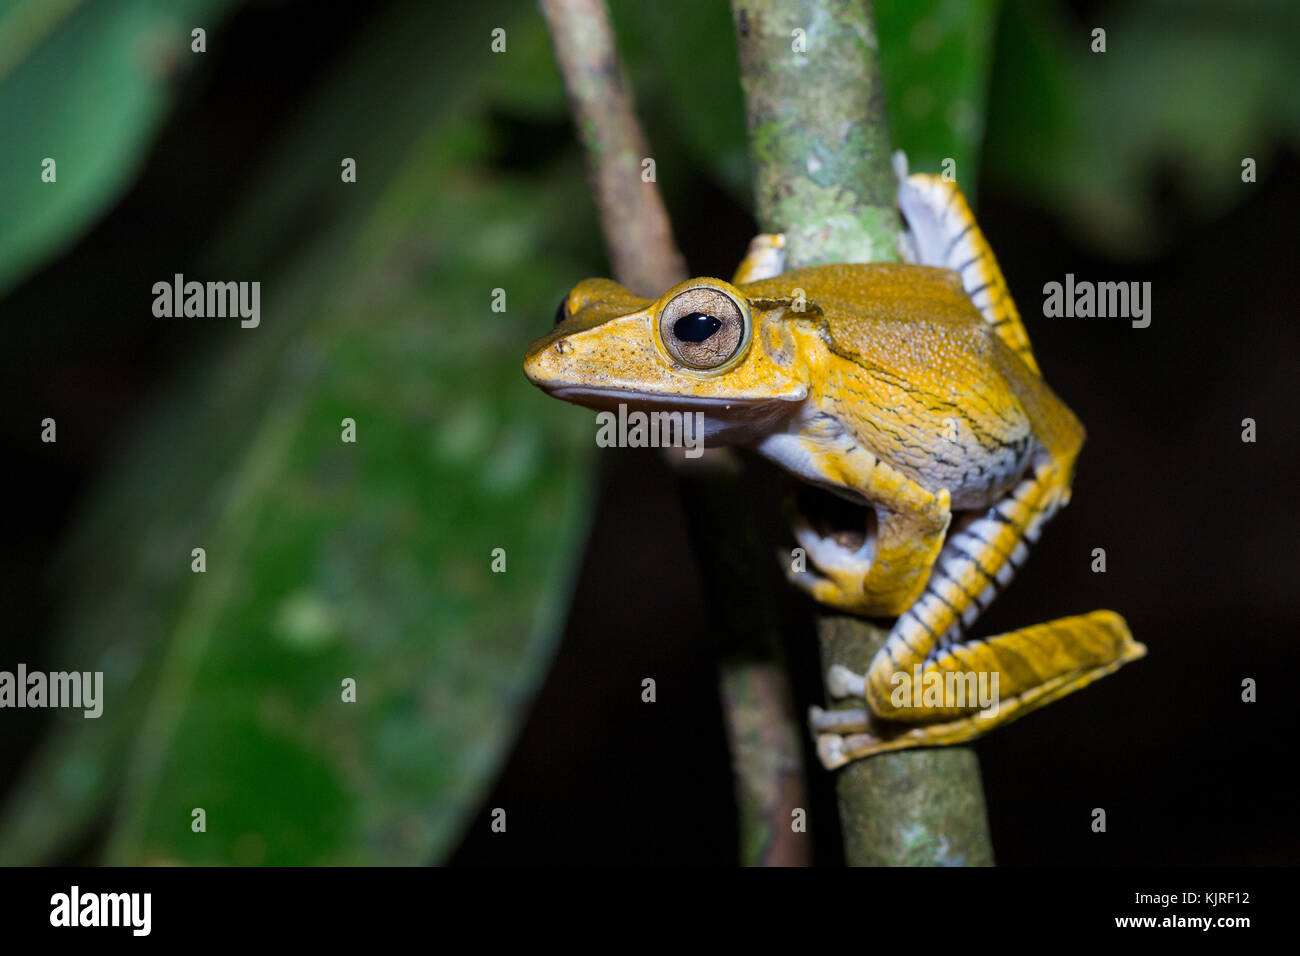 Polypedates otilophus (also known as the File-eared Tree Frog, Borneo Eared Frog, or Bony-headed Flying frog), Kubah - Stock Image